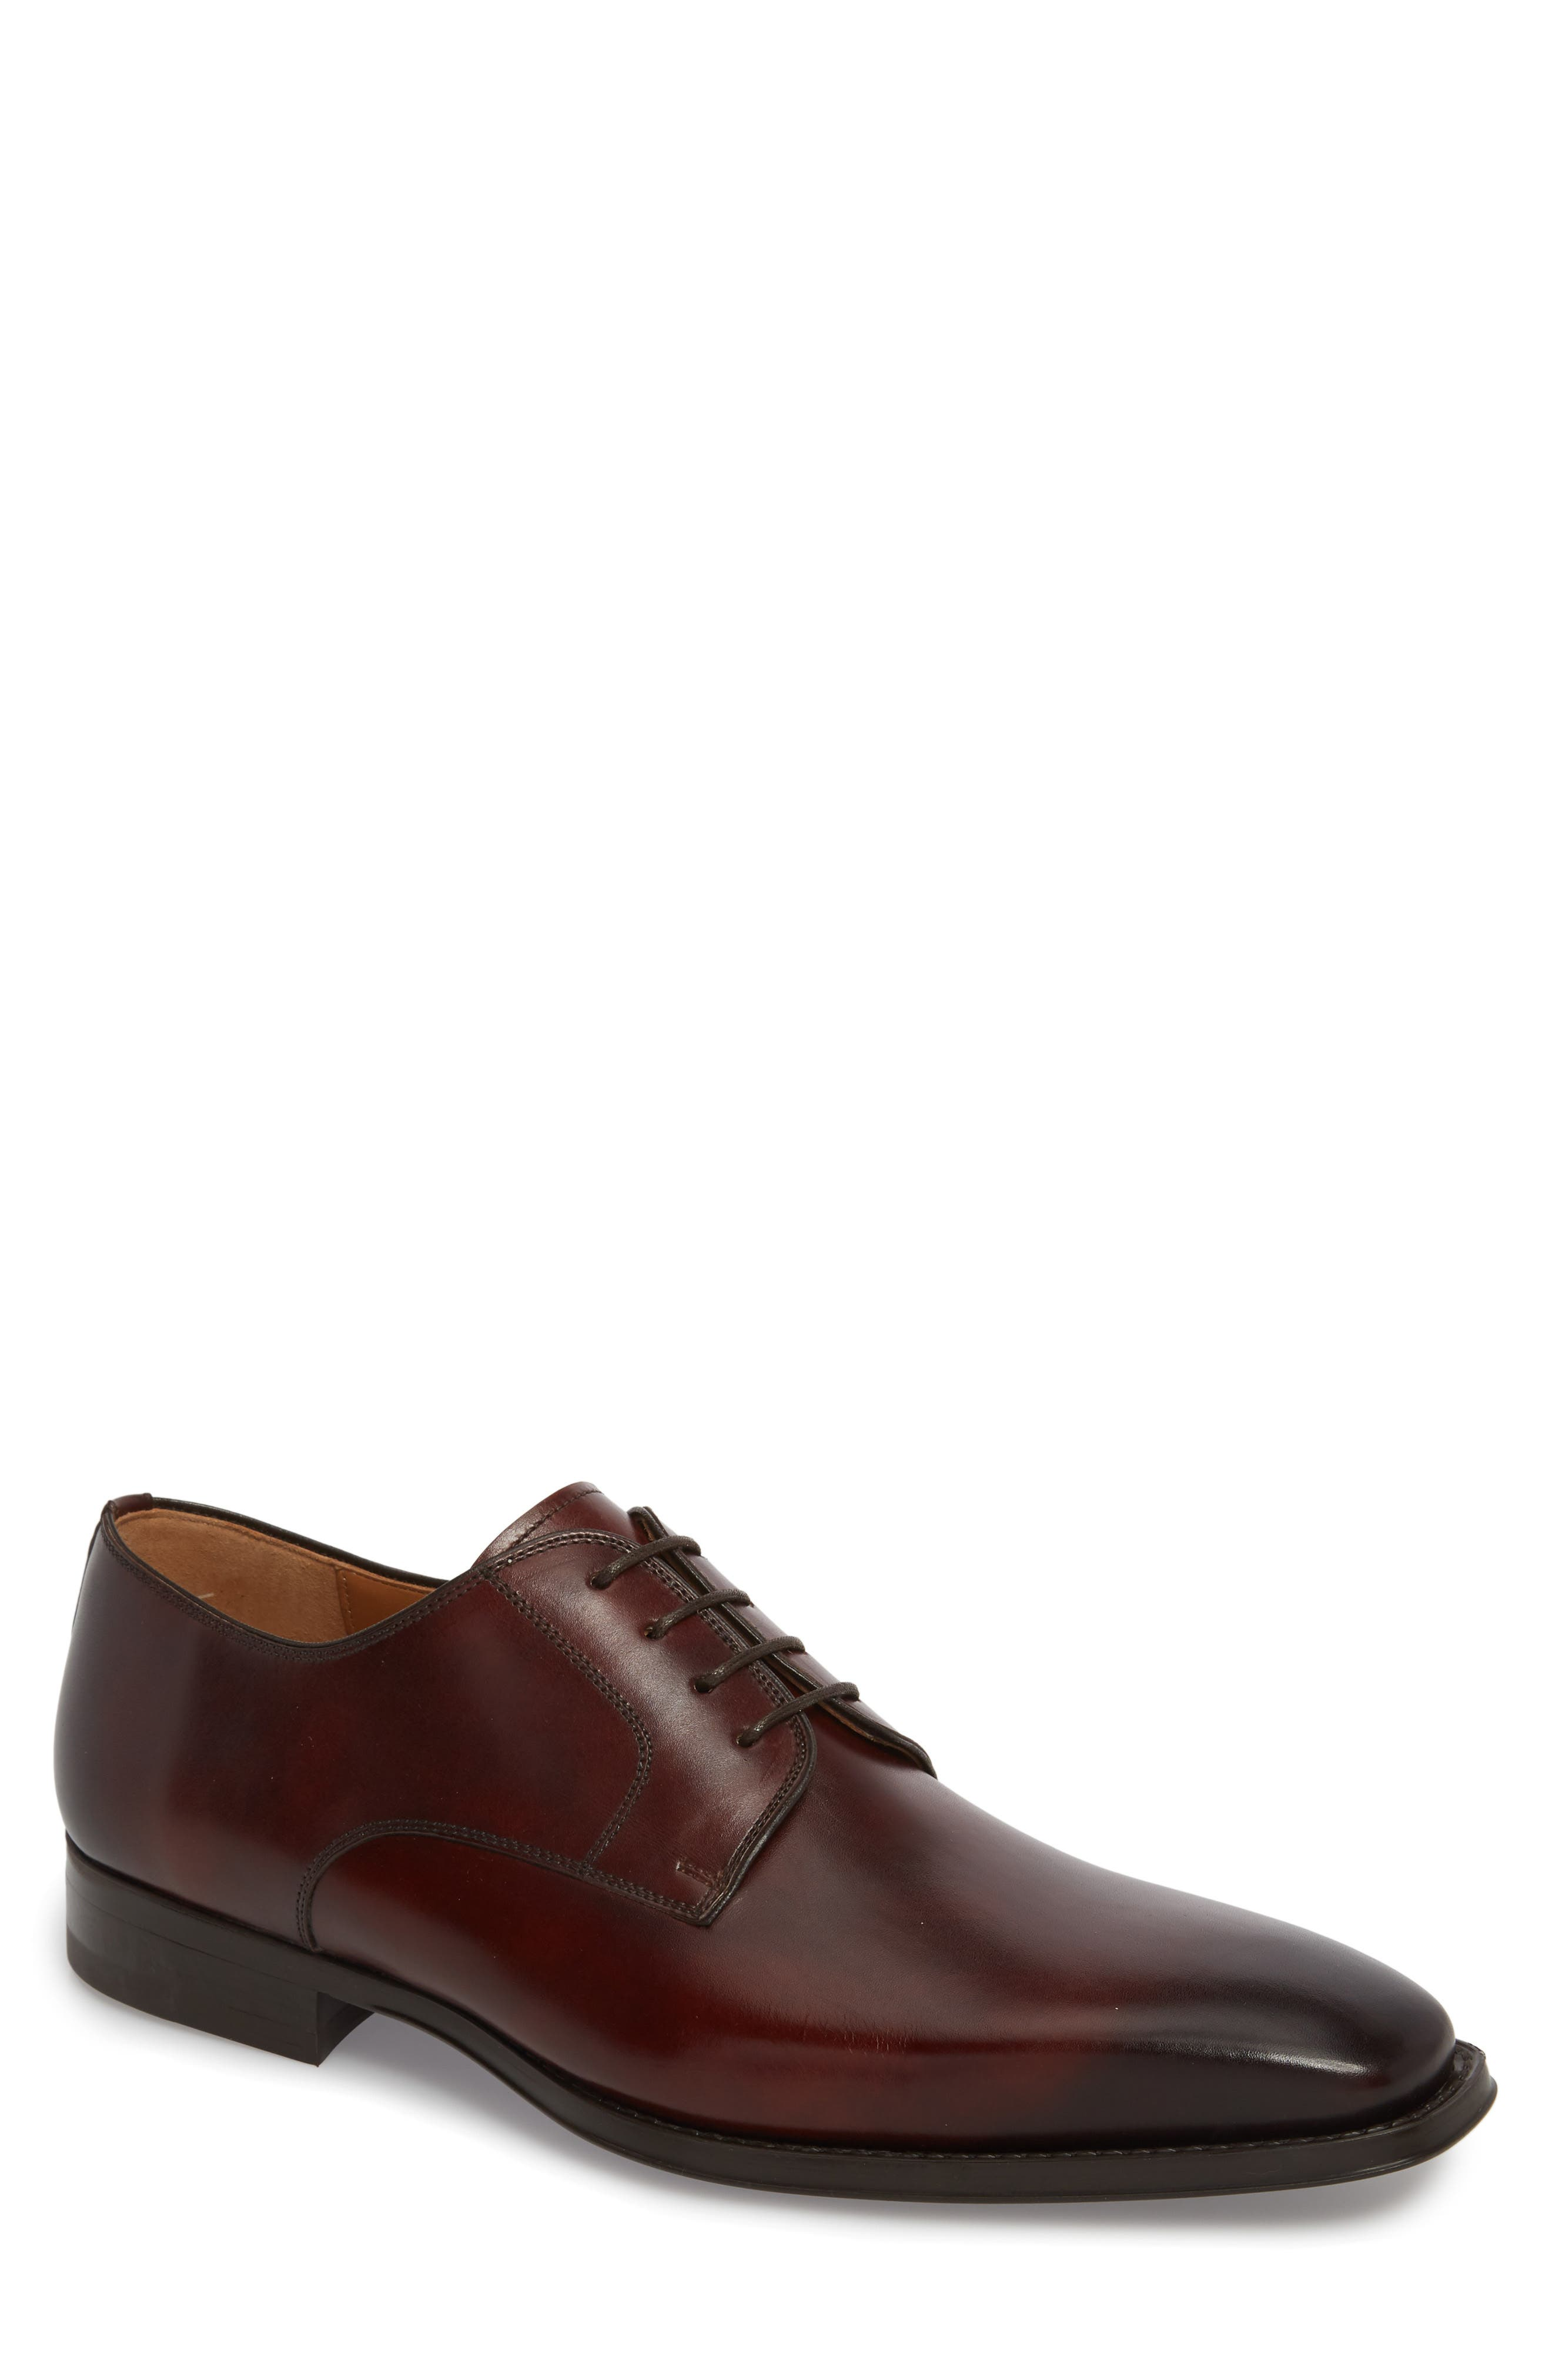 Colo II Plain Toe Derby,                         Main,                         color, Mid Brown Leather